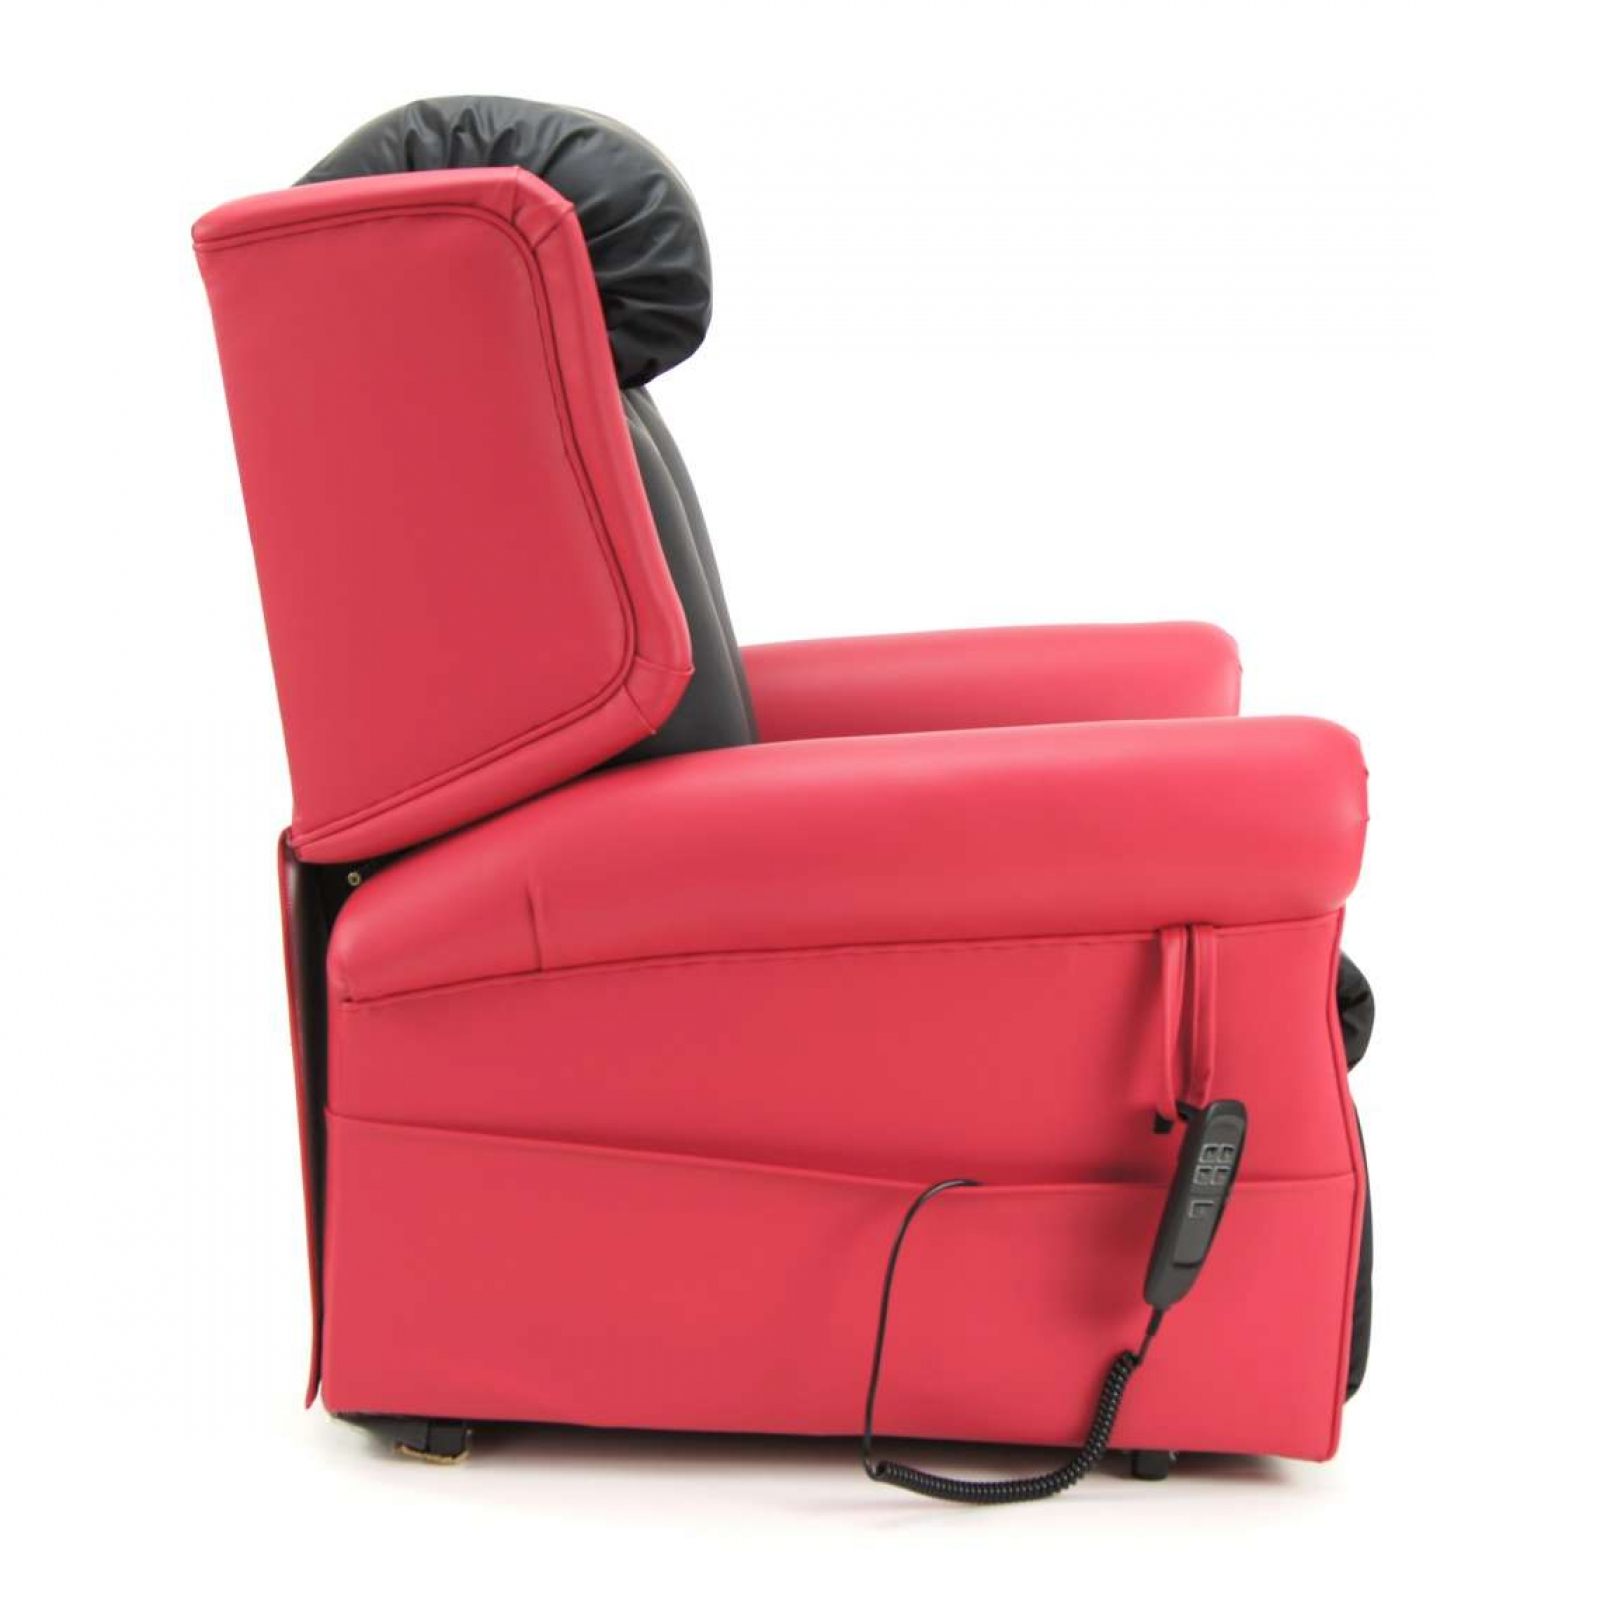 Riser Recliners For HireRent In Alton | Prices | Dual Tilt